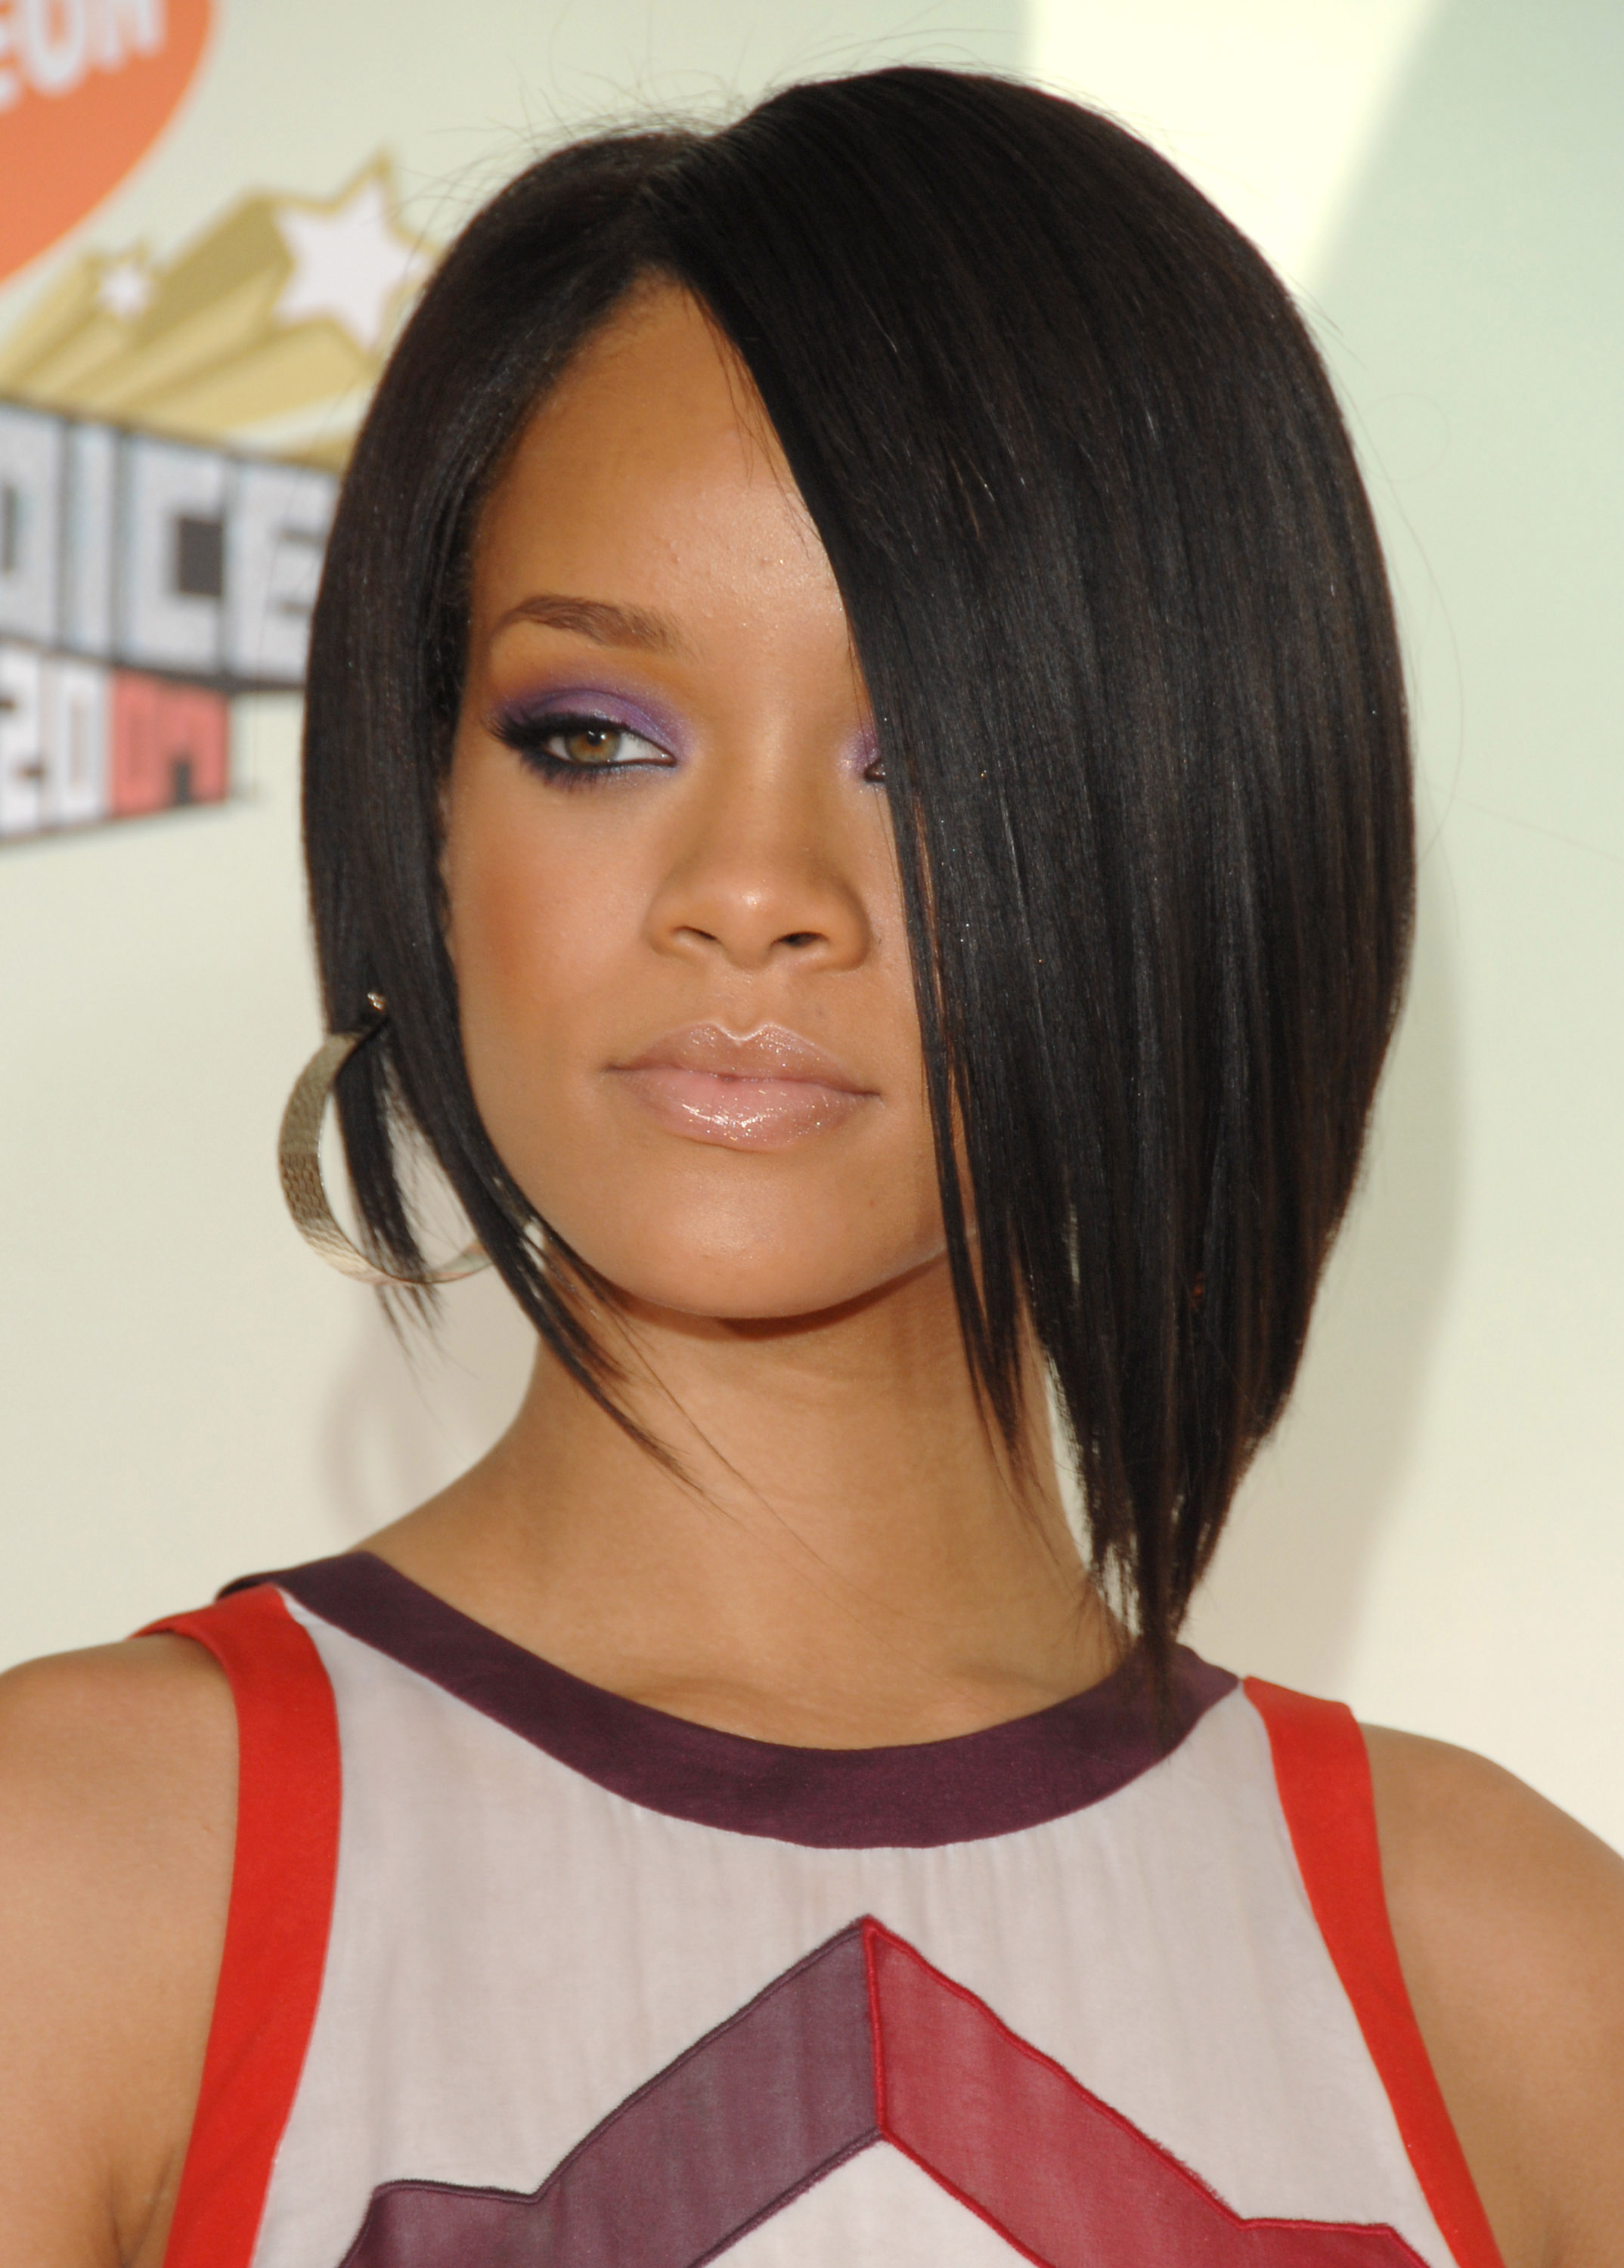 Remarkable 45 Black Hairstyles For Short Hair Short Haircuts For Black Women Hairstyles For Men Maxibearus